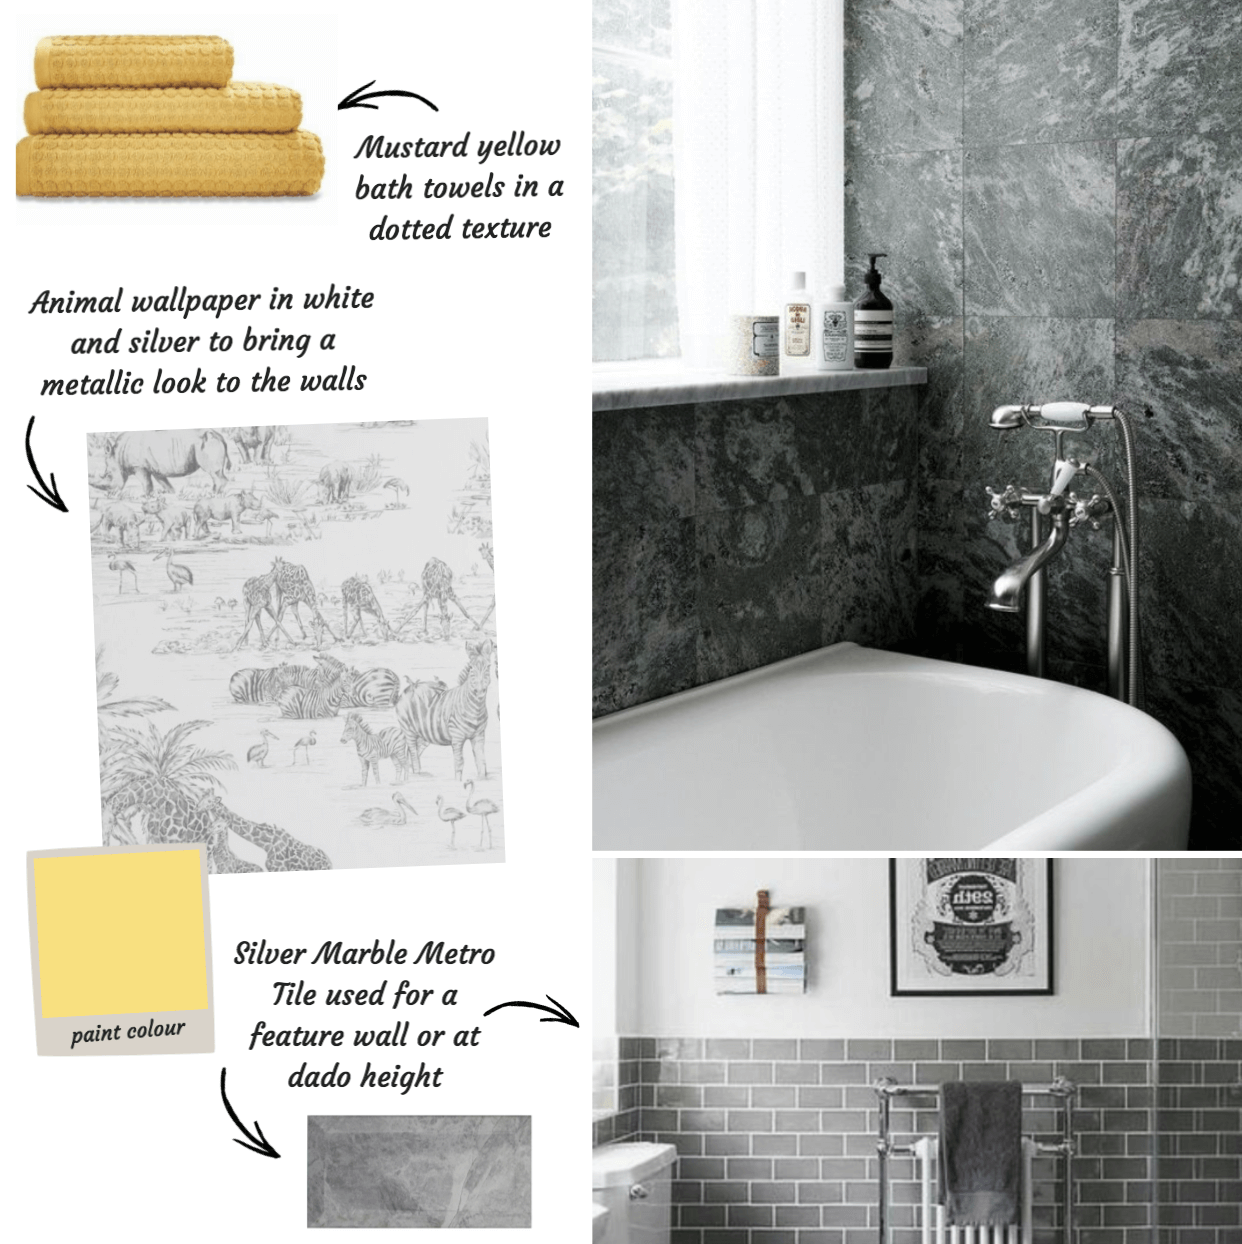 Silver Marble Metro Tiles from Tile Giant